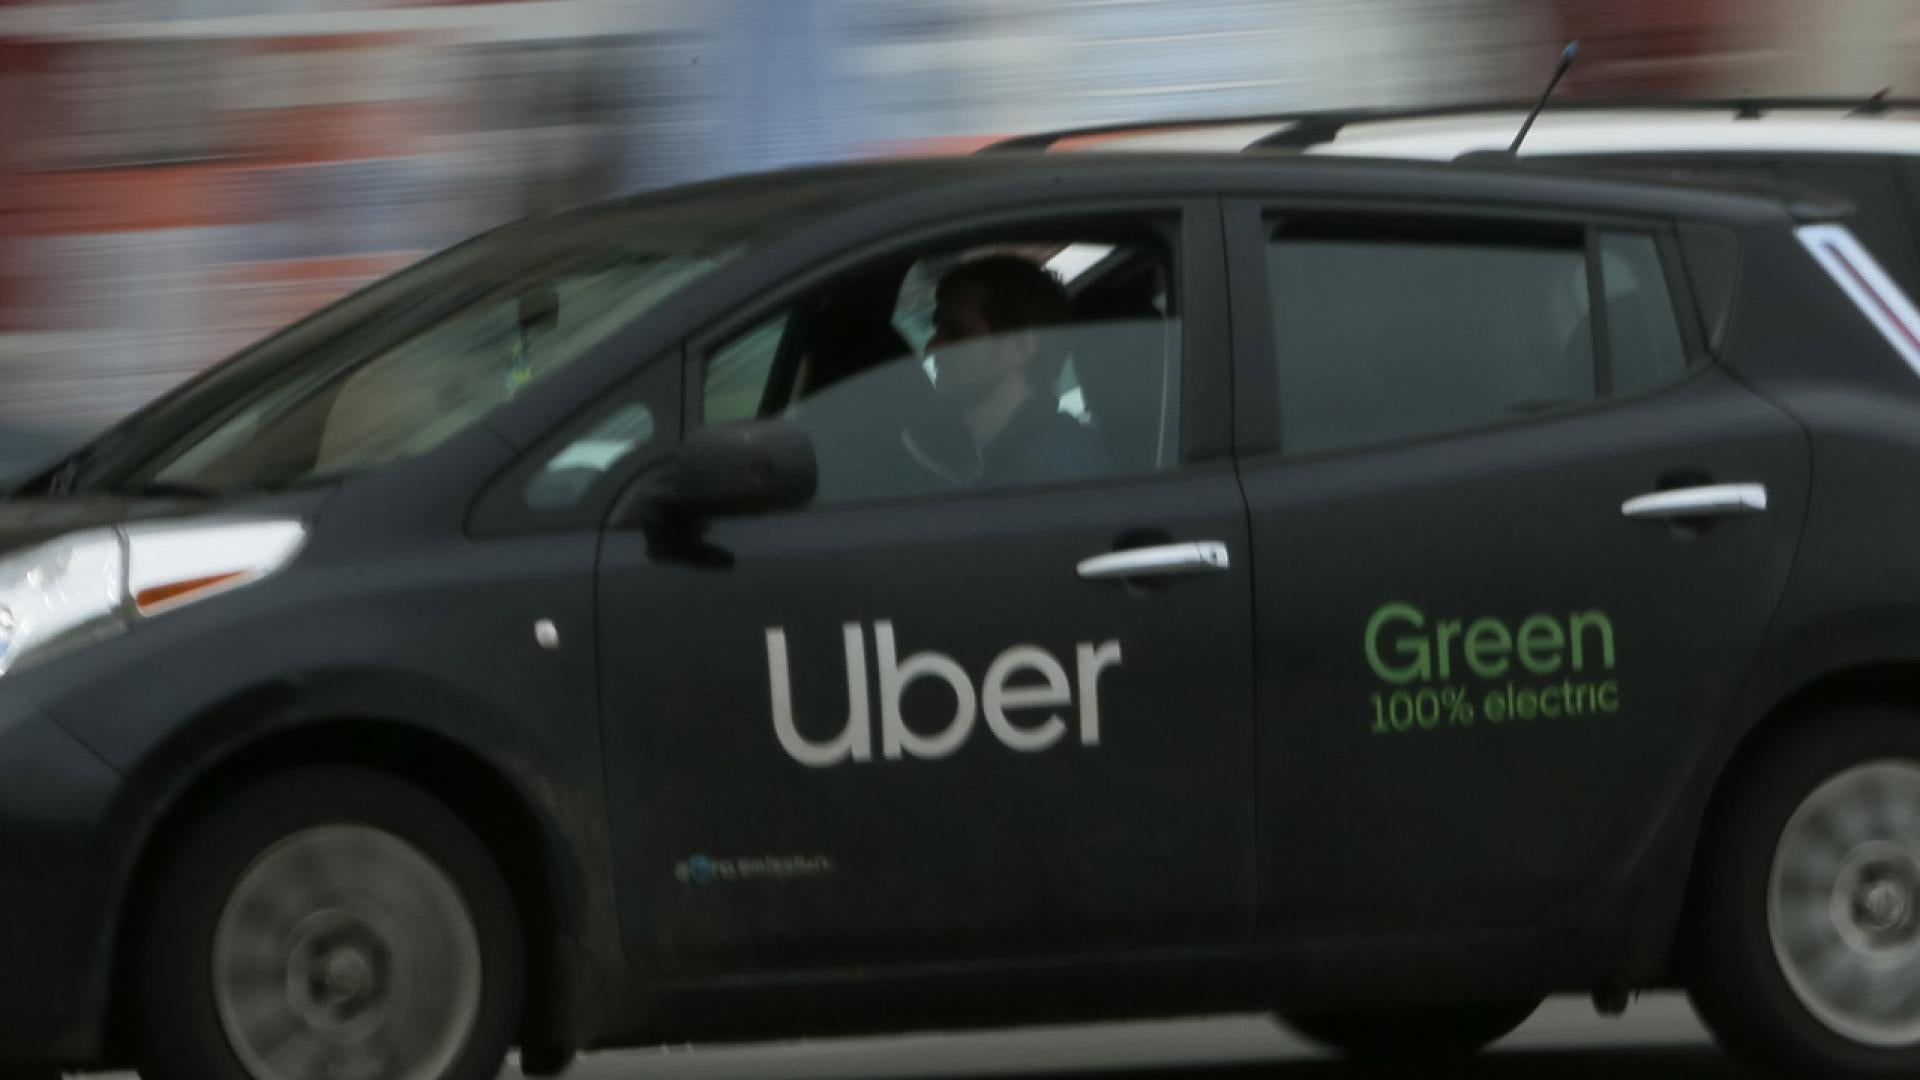 Florida Man Allegedly Beats Uber Driver with Antenna